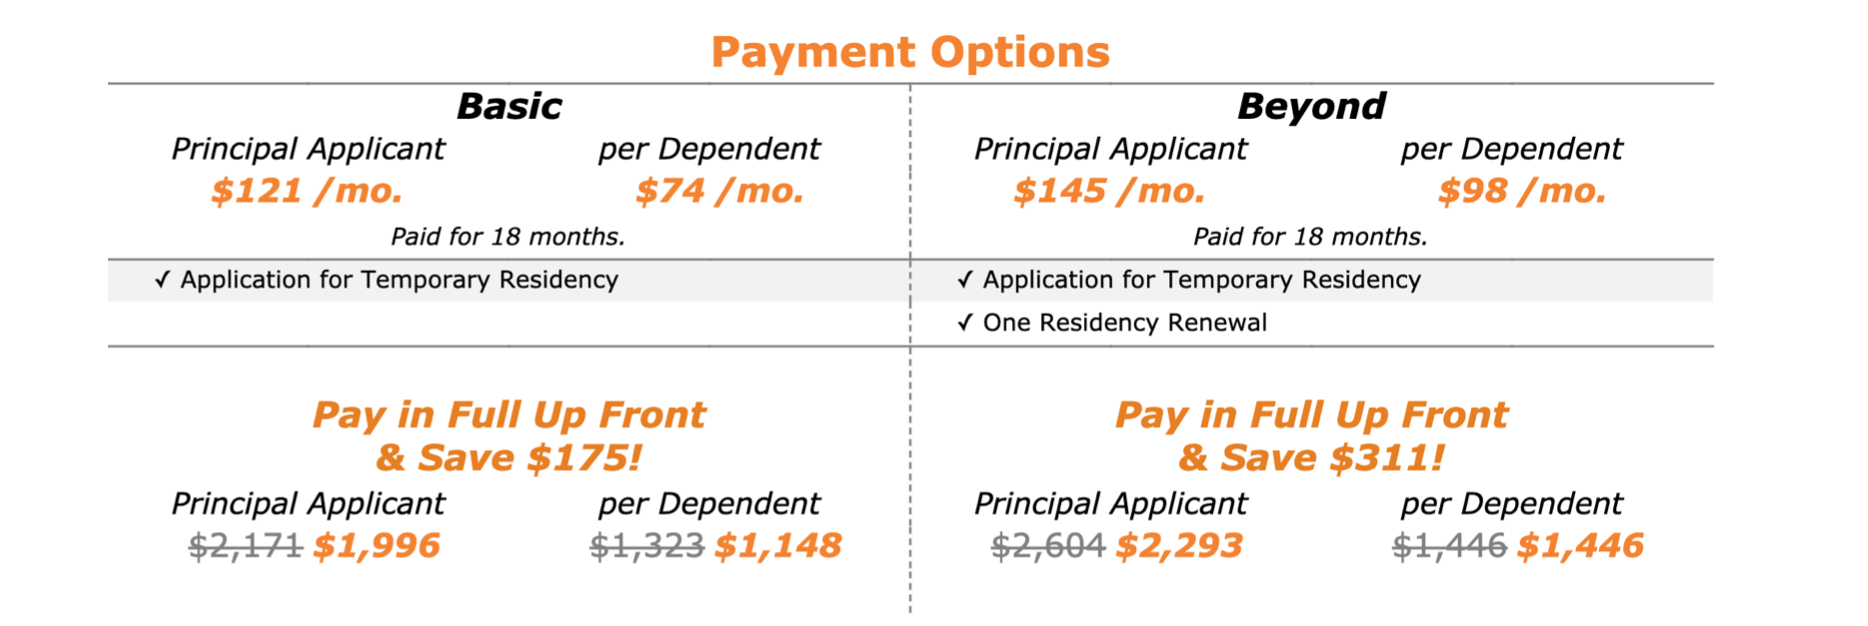 Payment Options for Temporary Residency for Retired People (Pensionados)